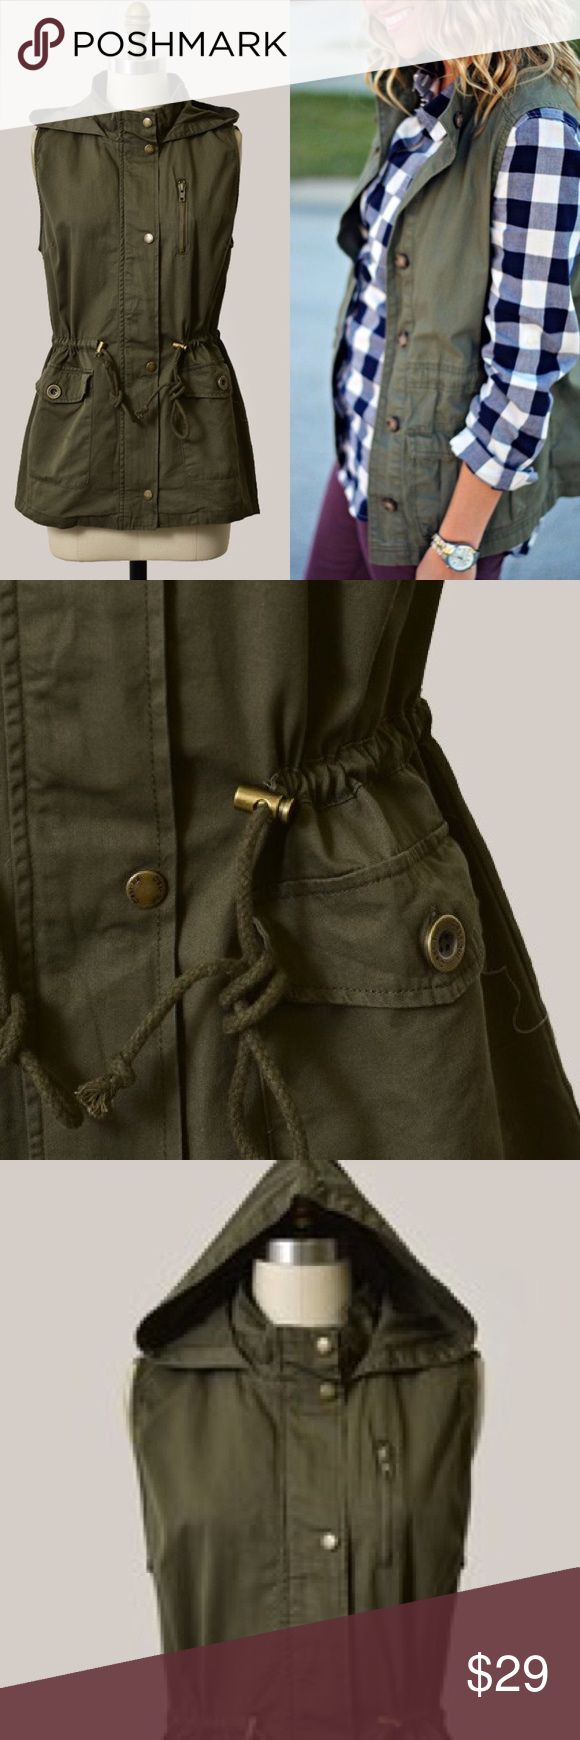 """New! Olive Green Hooded Utility Vest 100% Cotton, 27"""" In Length, 19"""" from Underarm to Underarm Jackets & Coats Vests"""